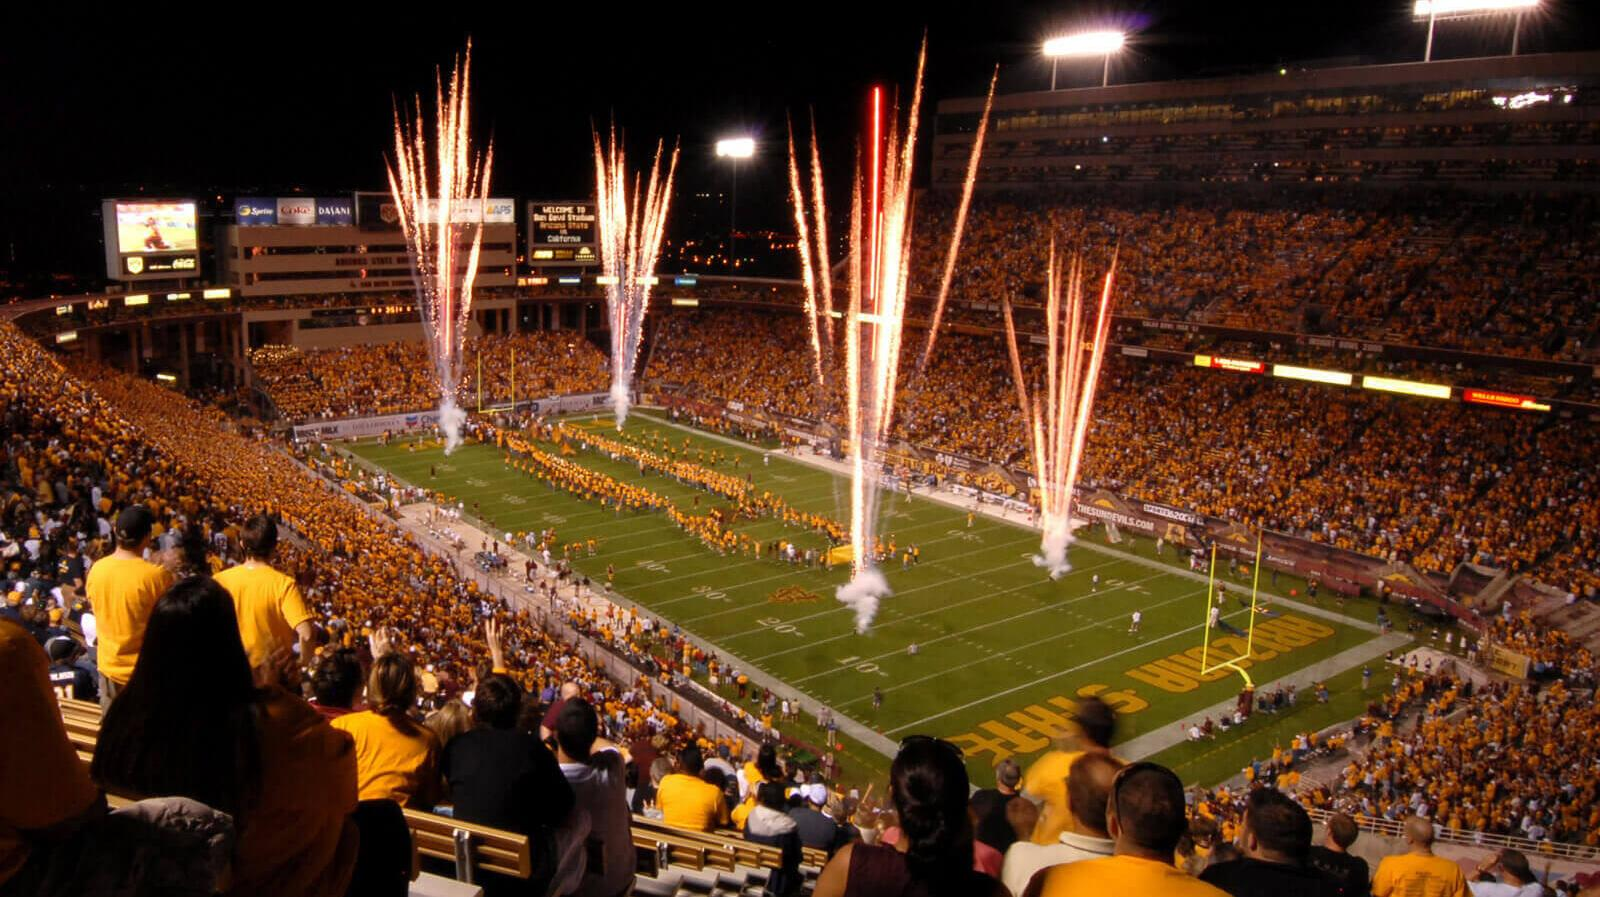 Fireworks dazzle the crowd at a Sun Devil Stadium football game